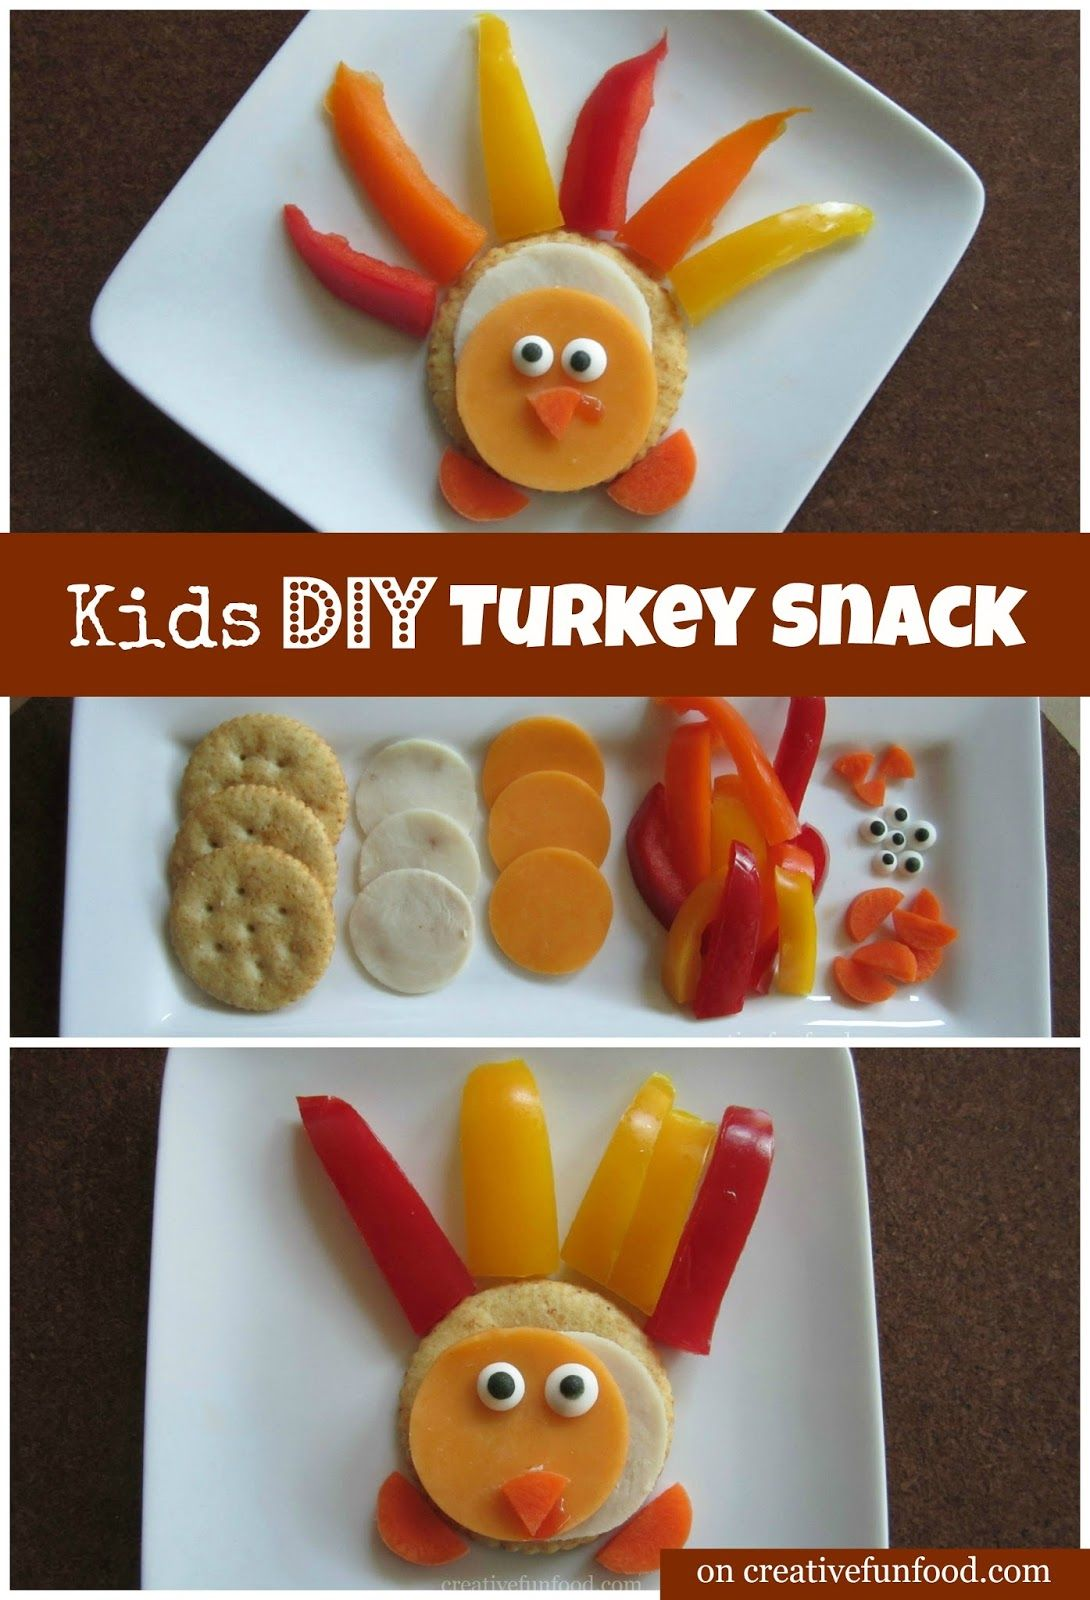 Kids Diy Turkey Snack A Simple And Healthy Snack Idea For